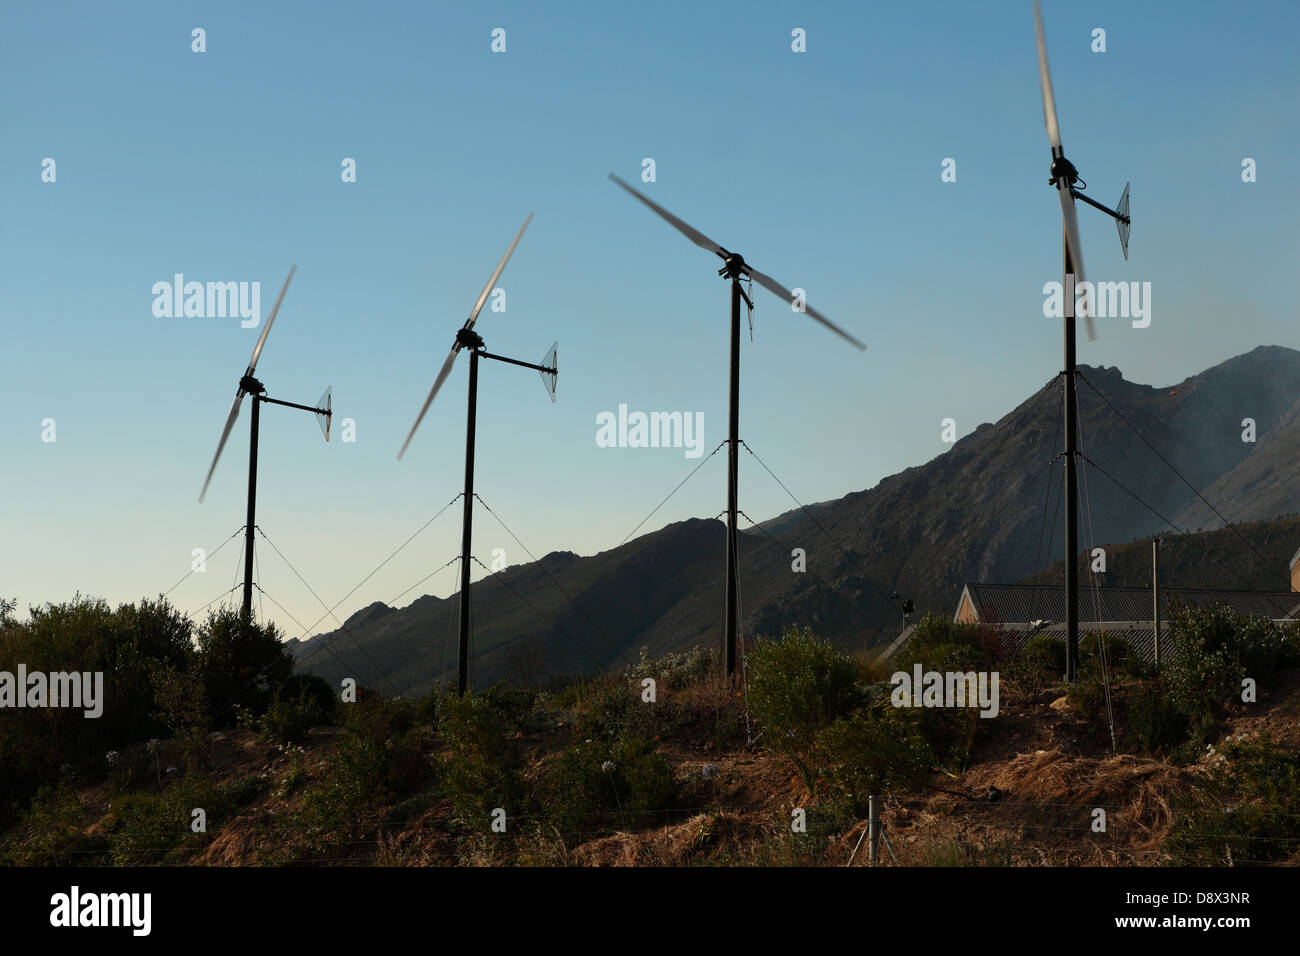 Domestic wind energy generation, Western Cape, South Africa - Stock Image